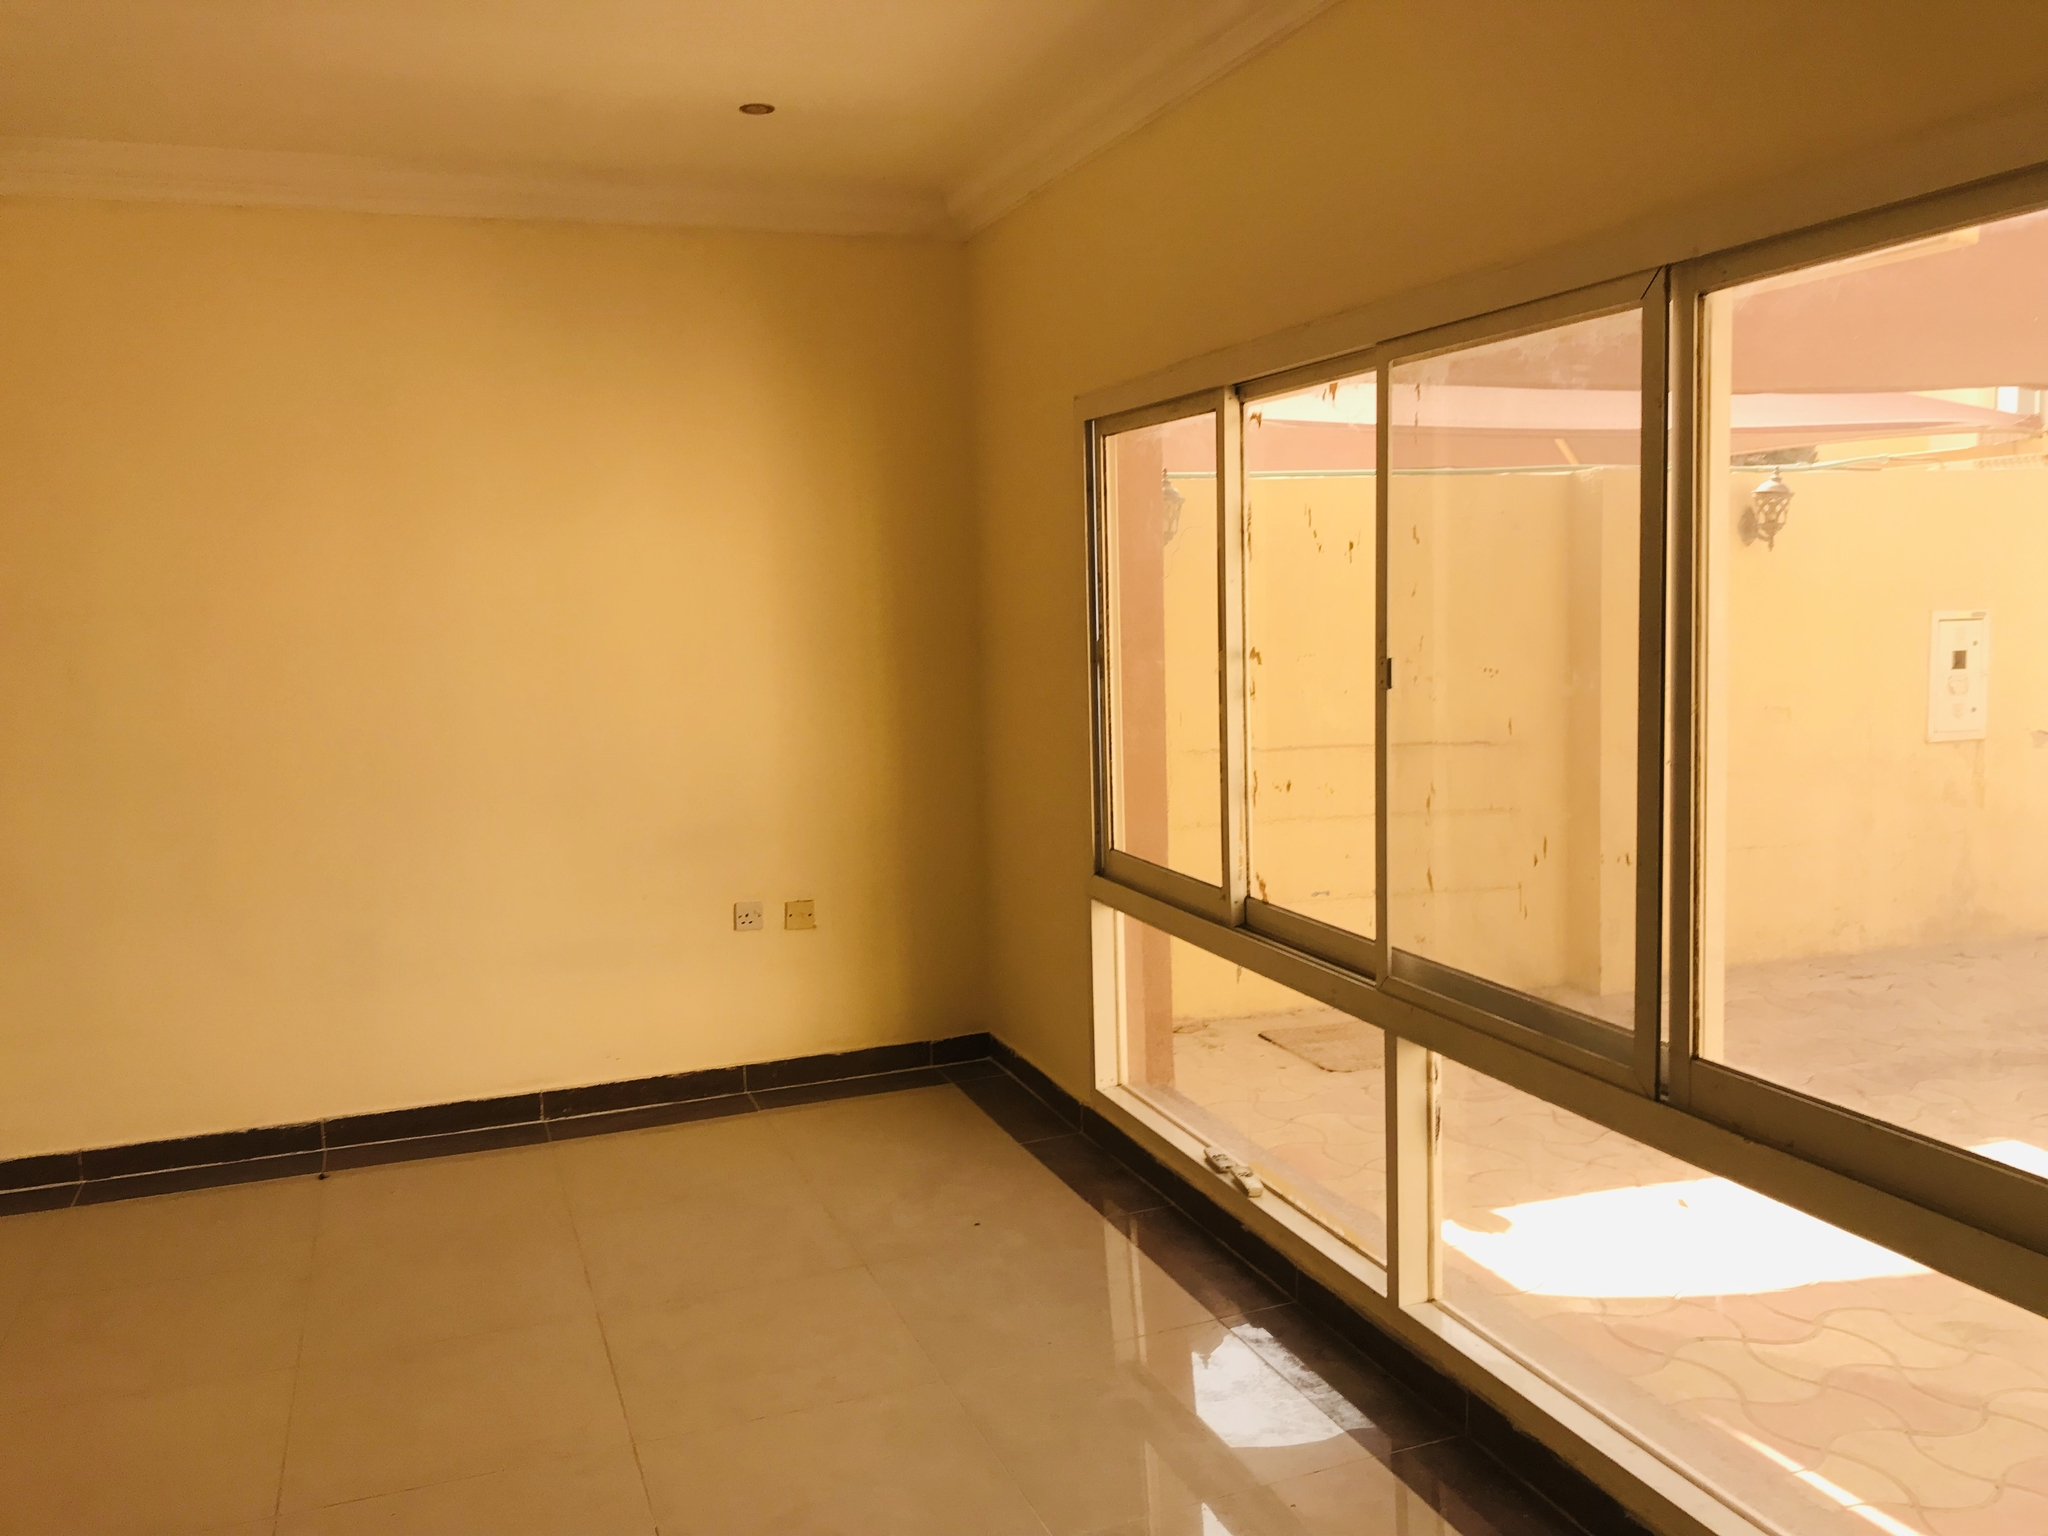 Spacious 7 Bedroom compund villa available at Abu Hampur opposit petrol station for the staff